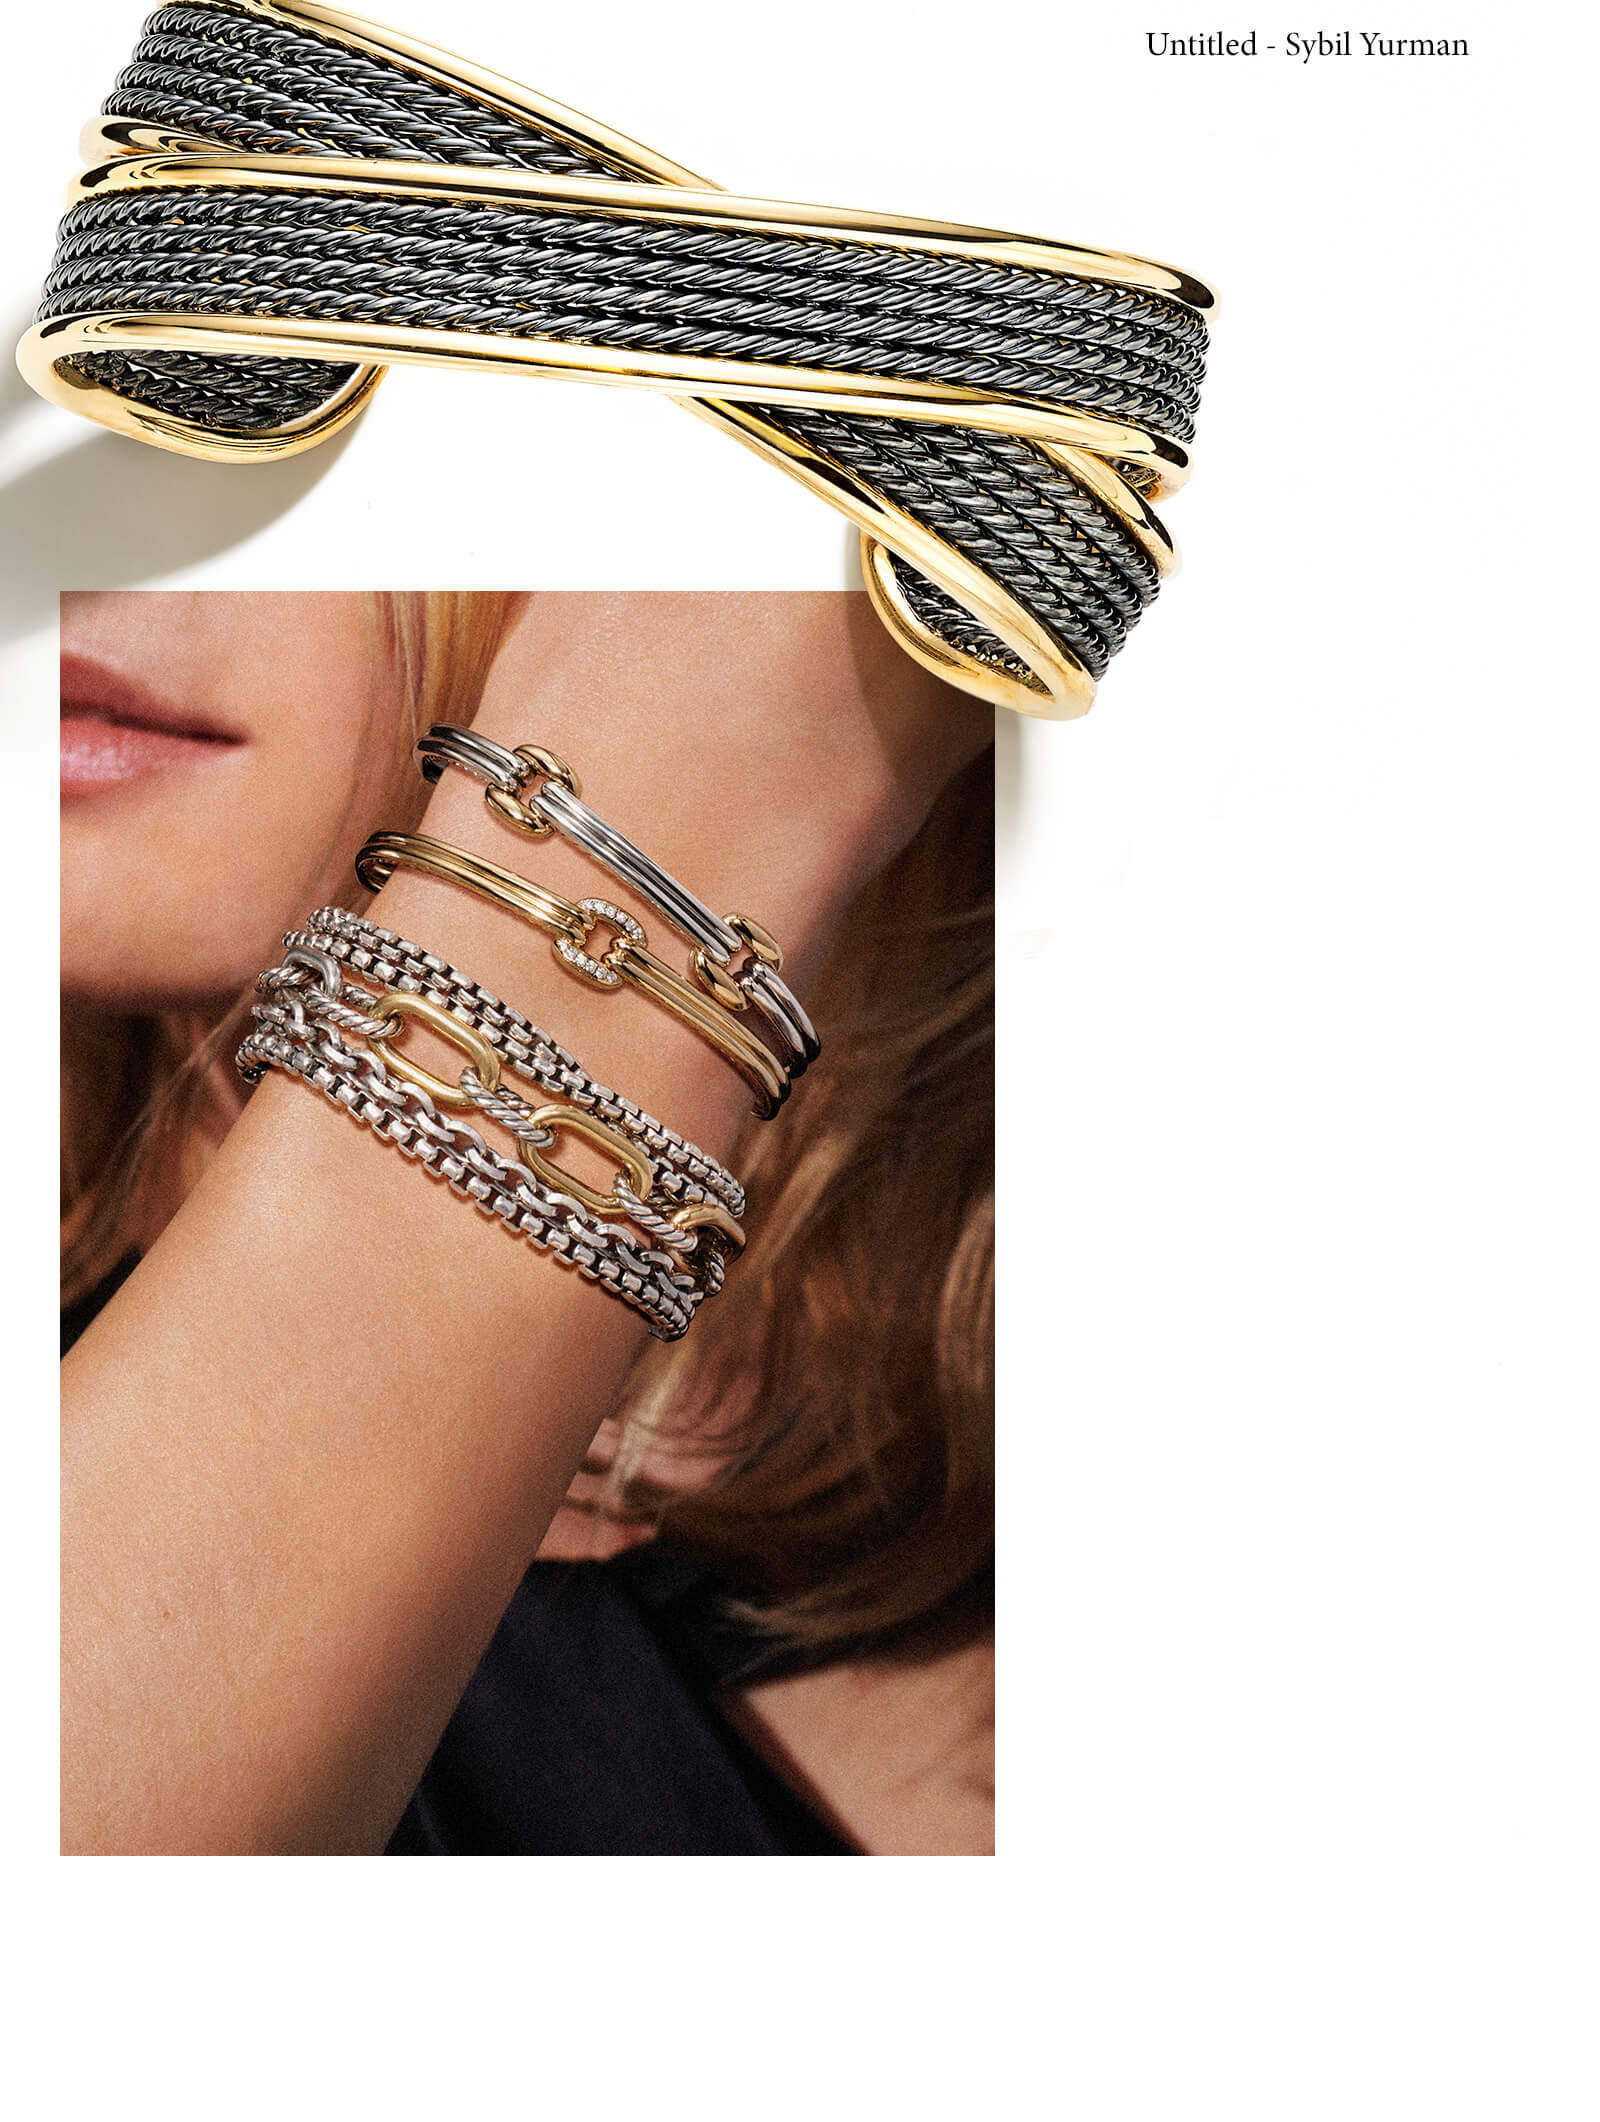 A color photo showing a David Yurman DY Origami cuff bracelet, crafted from blackened sterling silver with 18K yellow gold and casting a long shadow, juxtaposed above and slightly over the top-right corner of another photo. This color photo shows a close-up of a woman's wrist as her arm is crossed in front of her face, which is turned slightly away from the camera. On her wrist she is wearing David Yurman bracelets from the Thoroughbred and Chain collections. The jewelry is crafted from sterling silver and 18K yellow gold with or without pavé white diamonds.